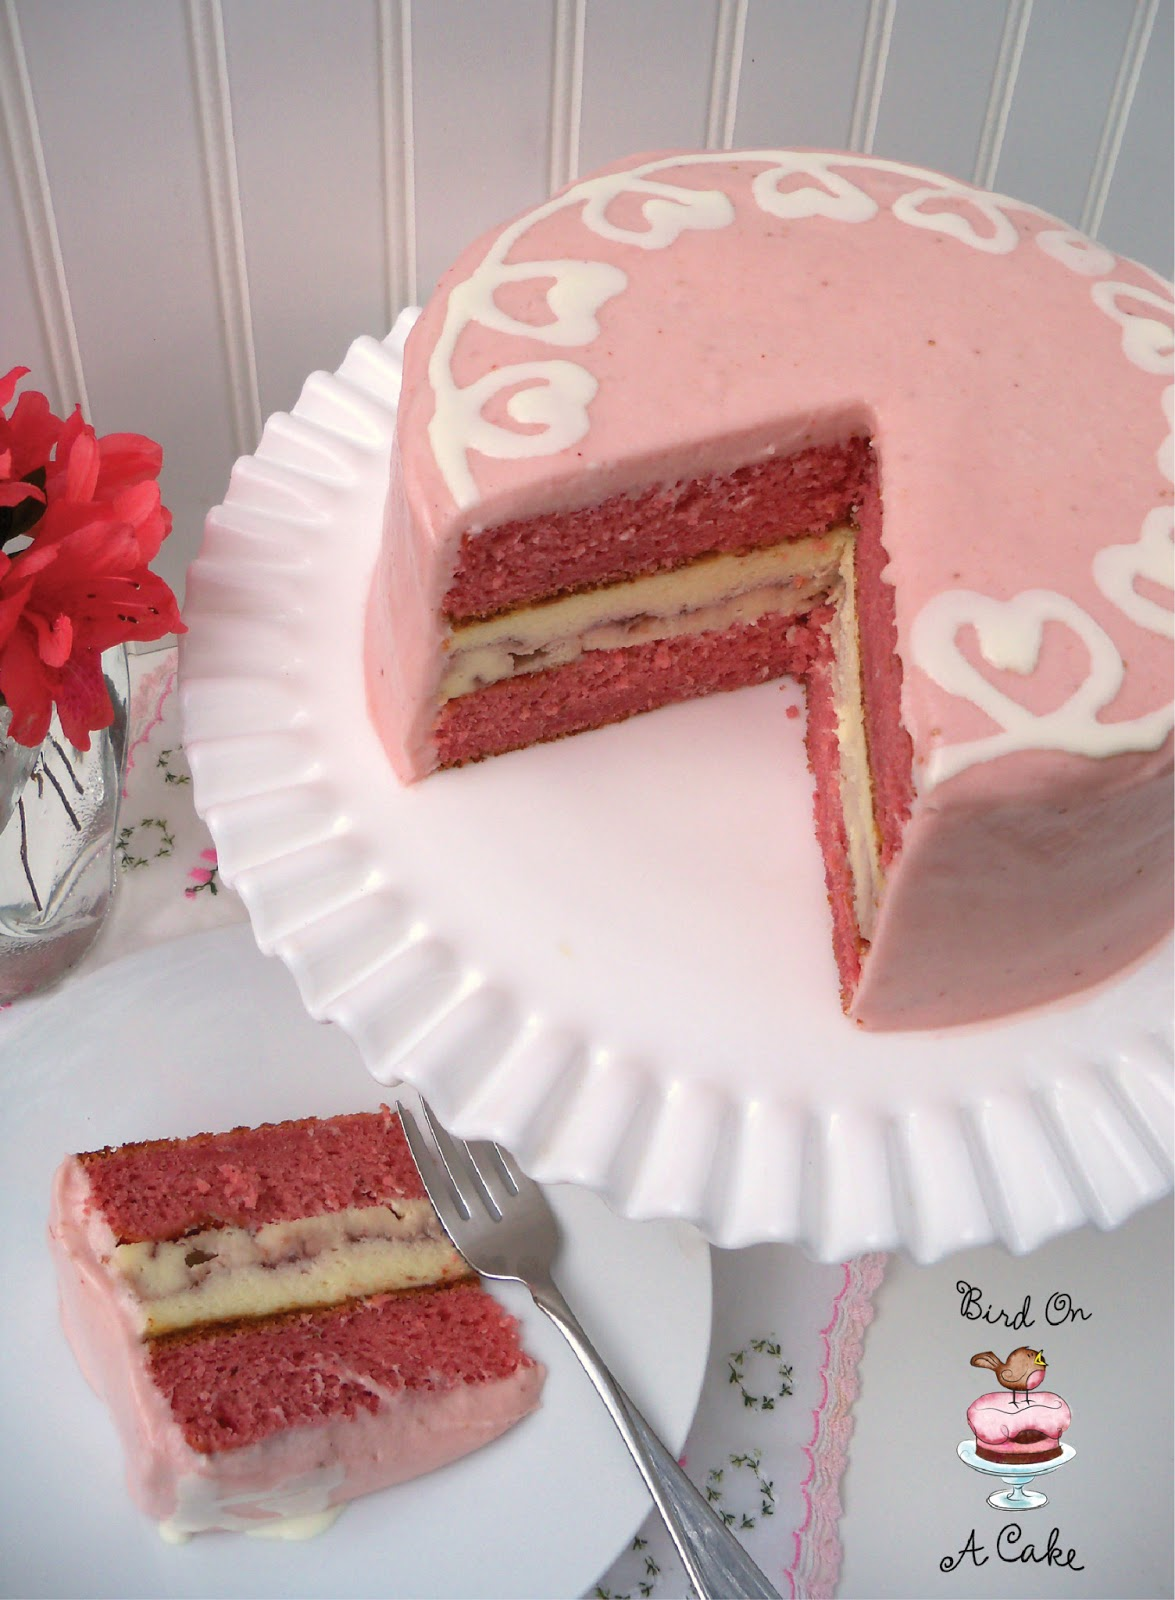 Bird On A Cake: Strawberry Swirl Cheesecake Cake